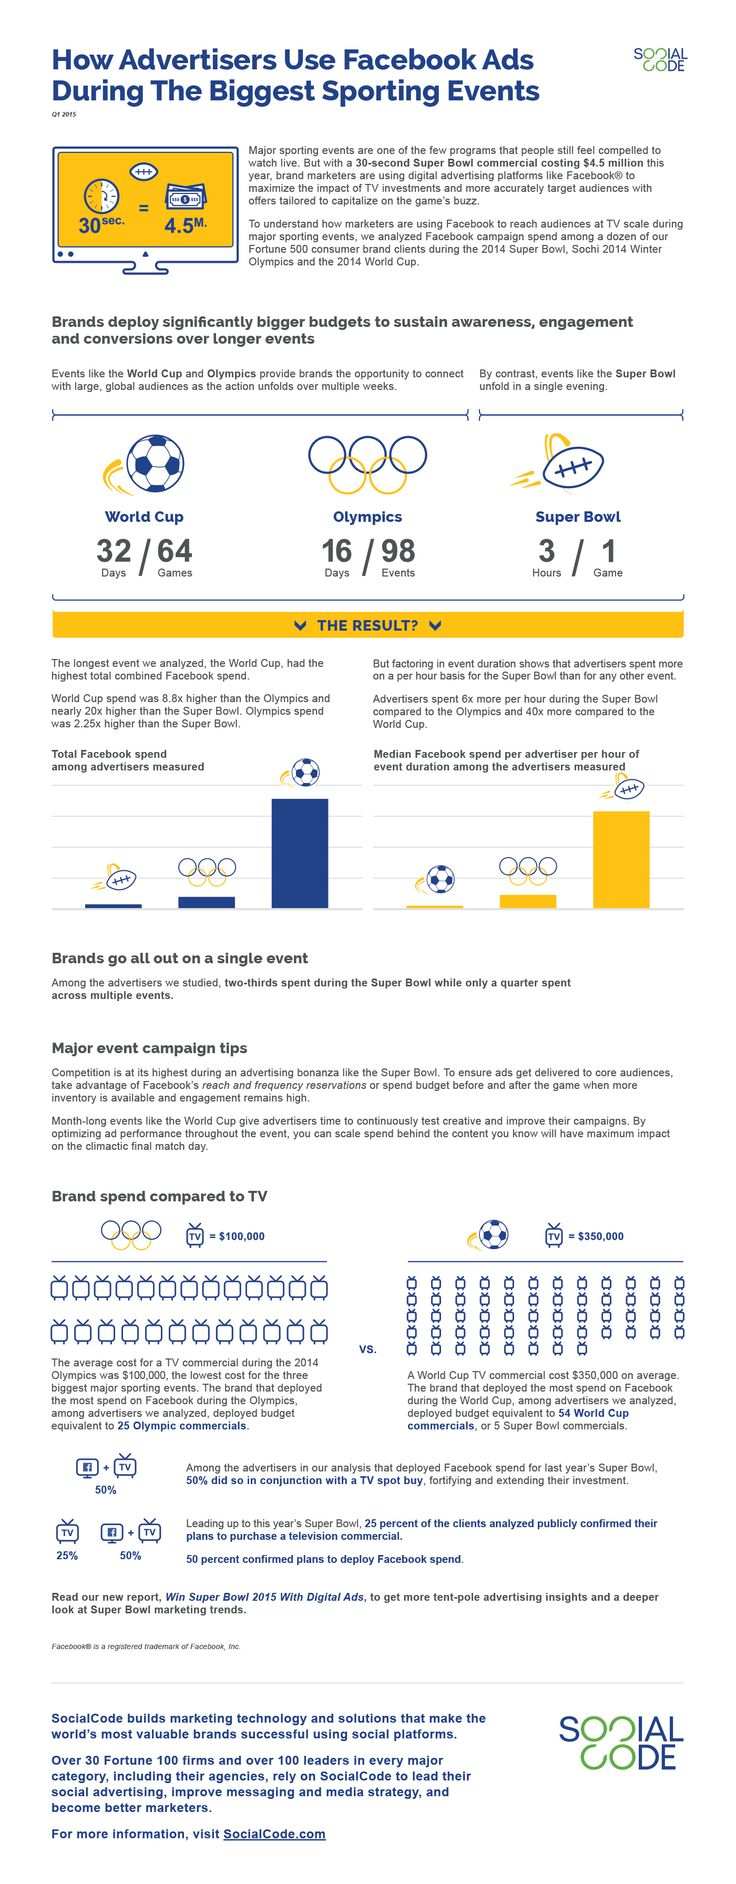 #Infographic - How Advertisers Use Facebook Ads During The Biggest Sporting Events. via @socialcode